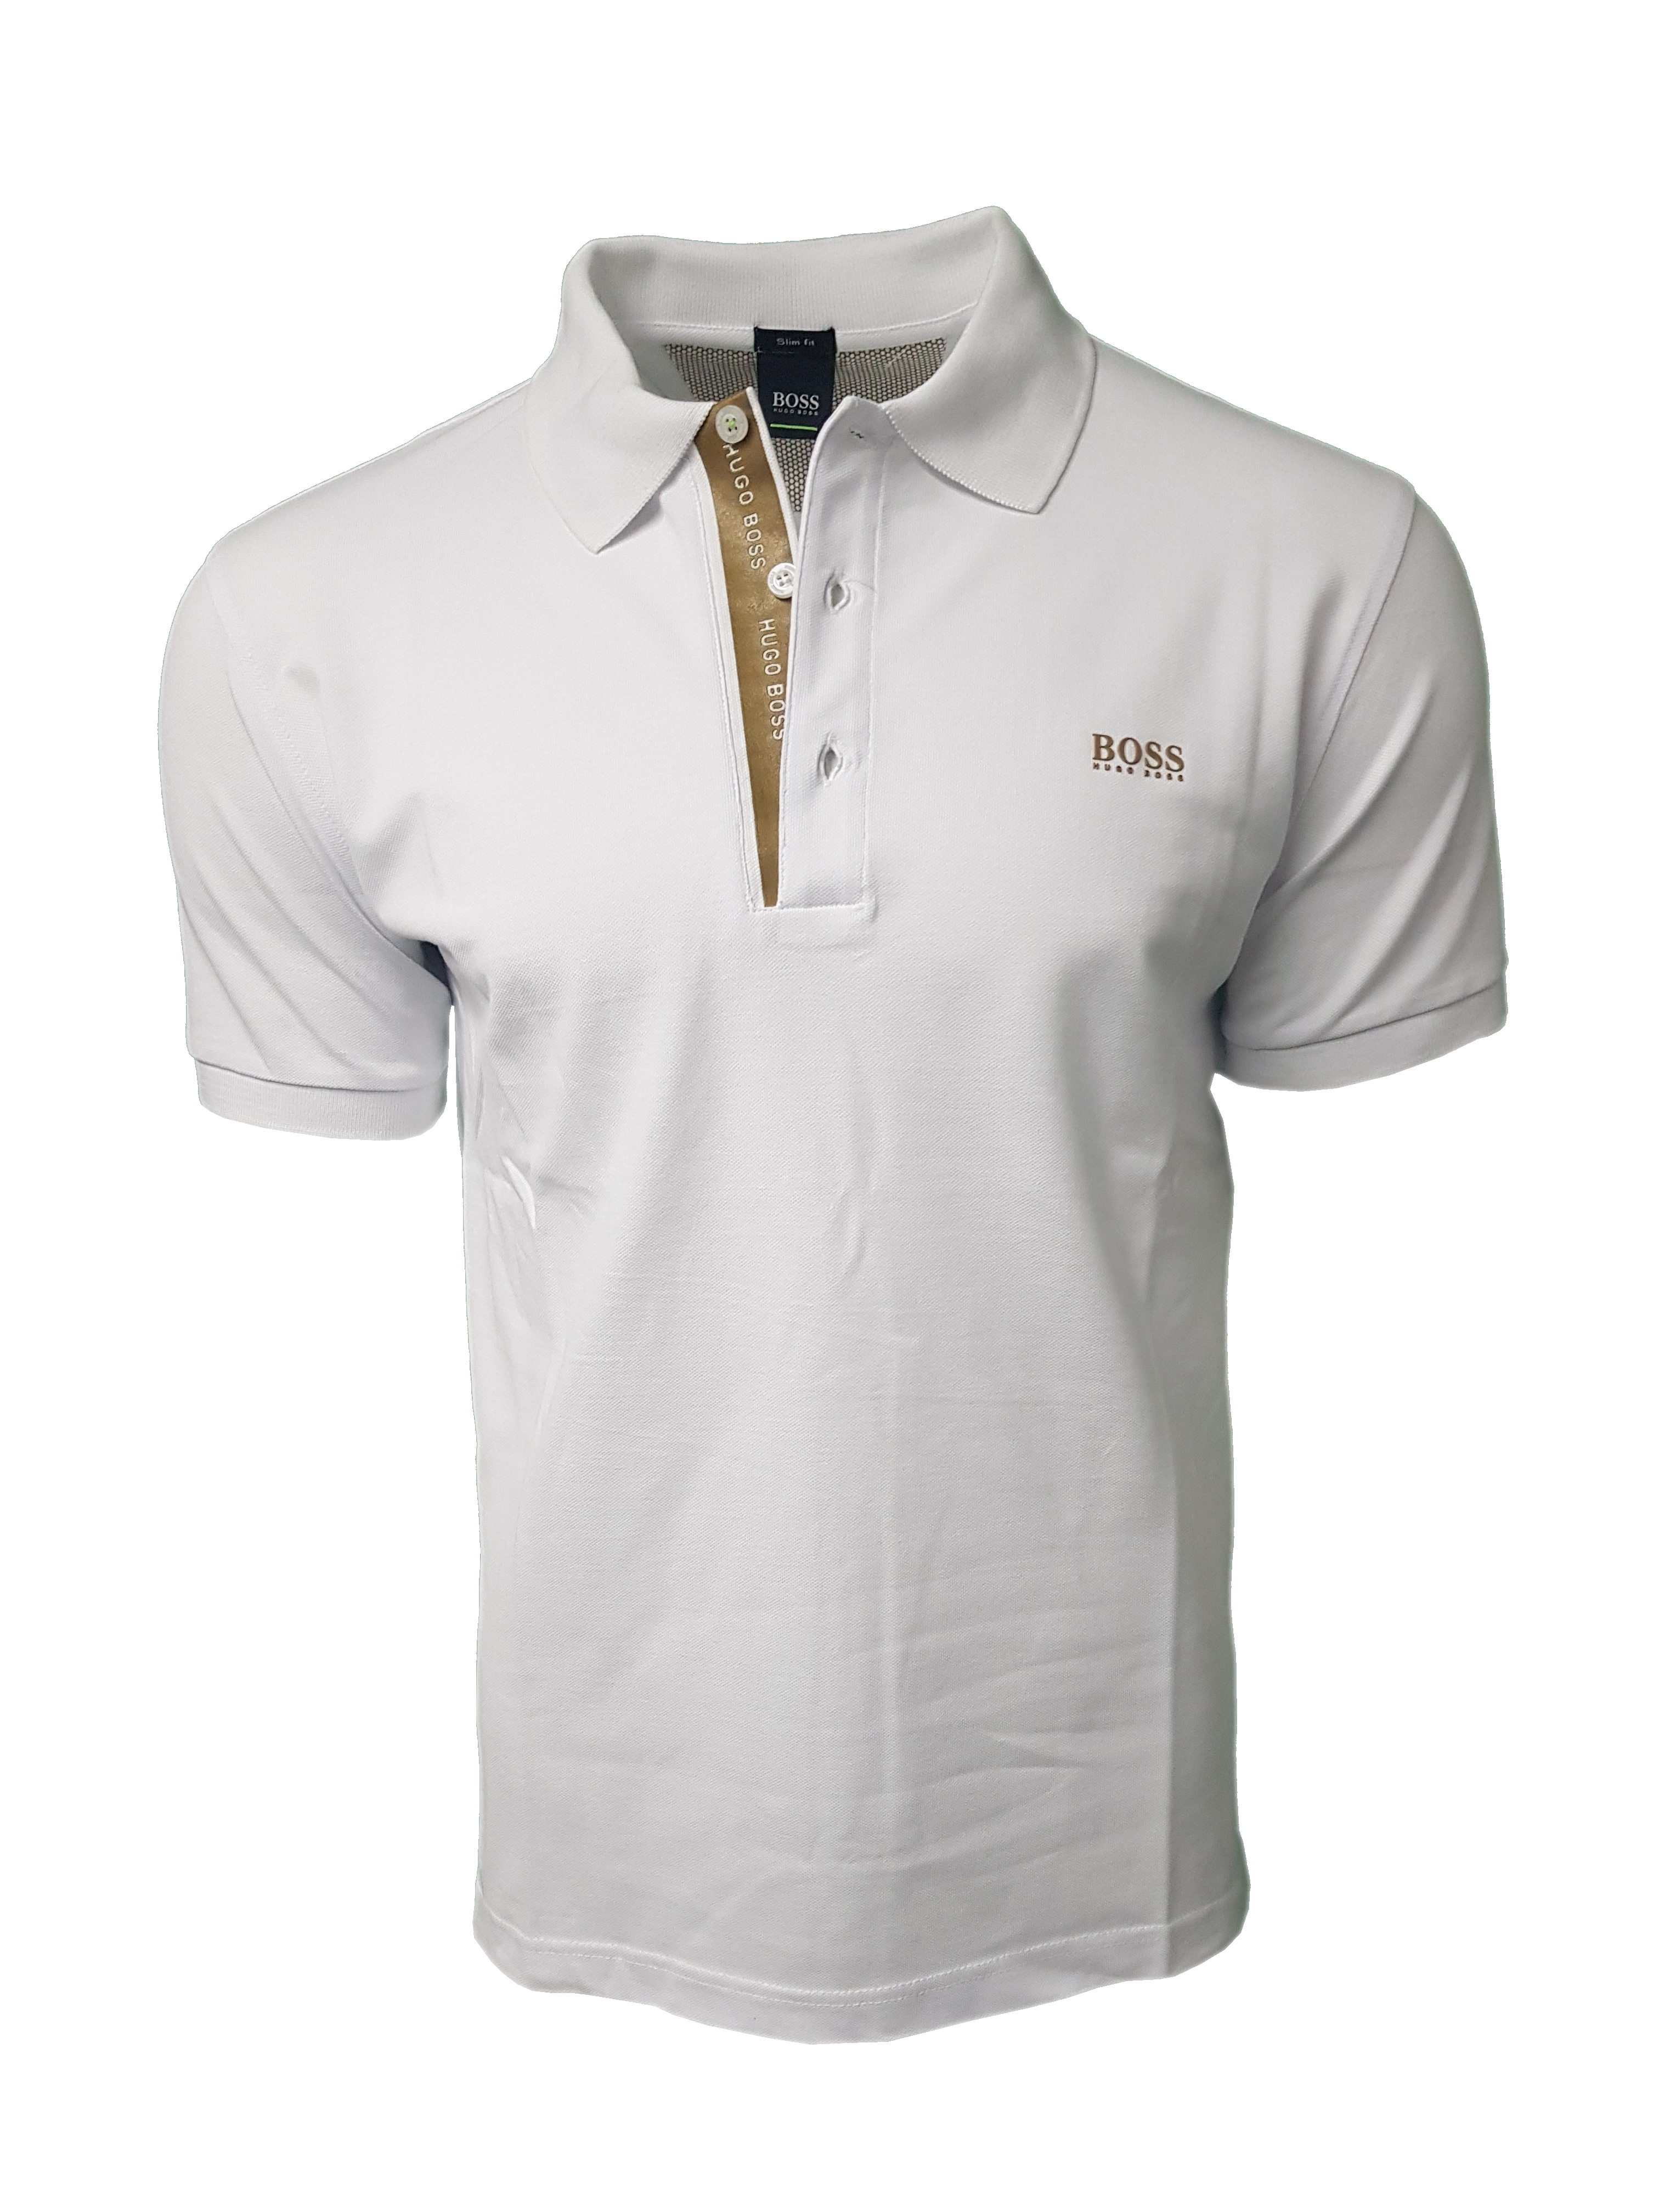 a7ed80f13 Hugo Boss Polo Shirt. Short Sleeve with Golden Placket in White ...